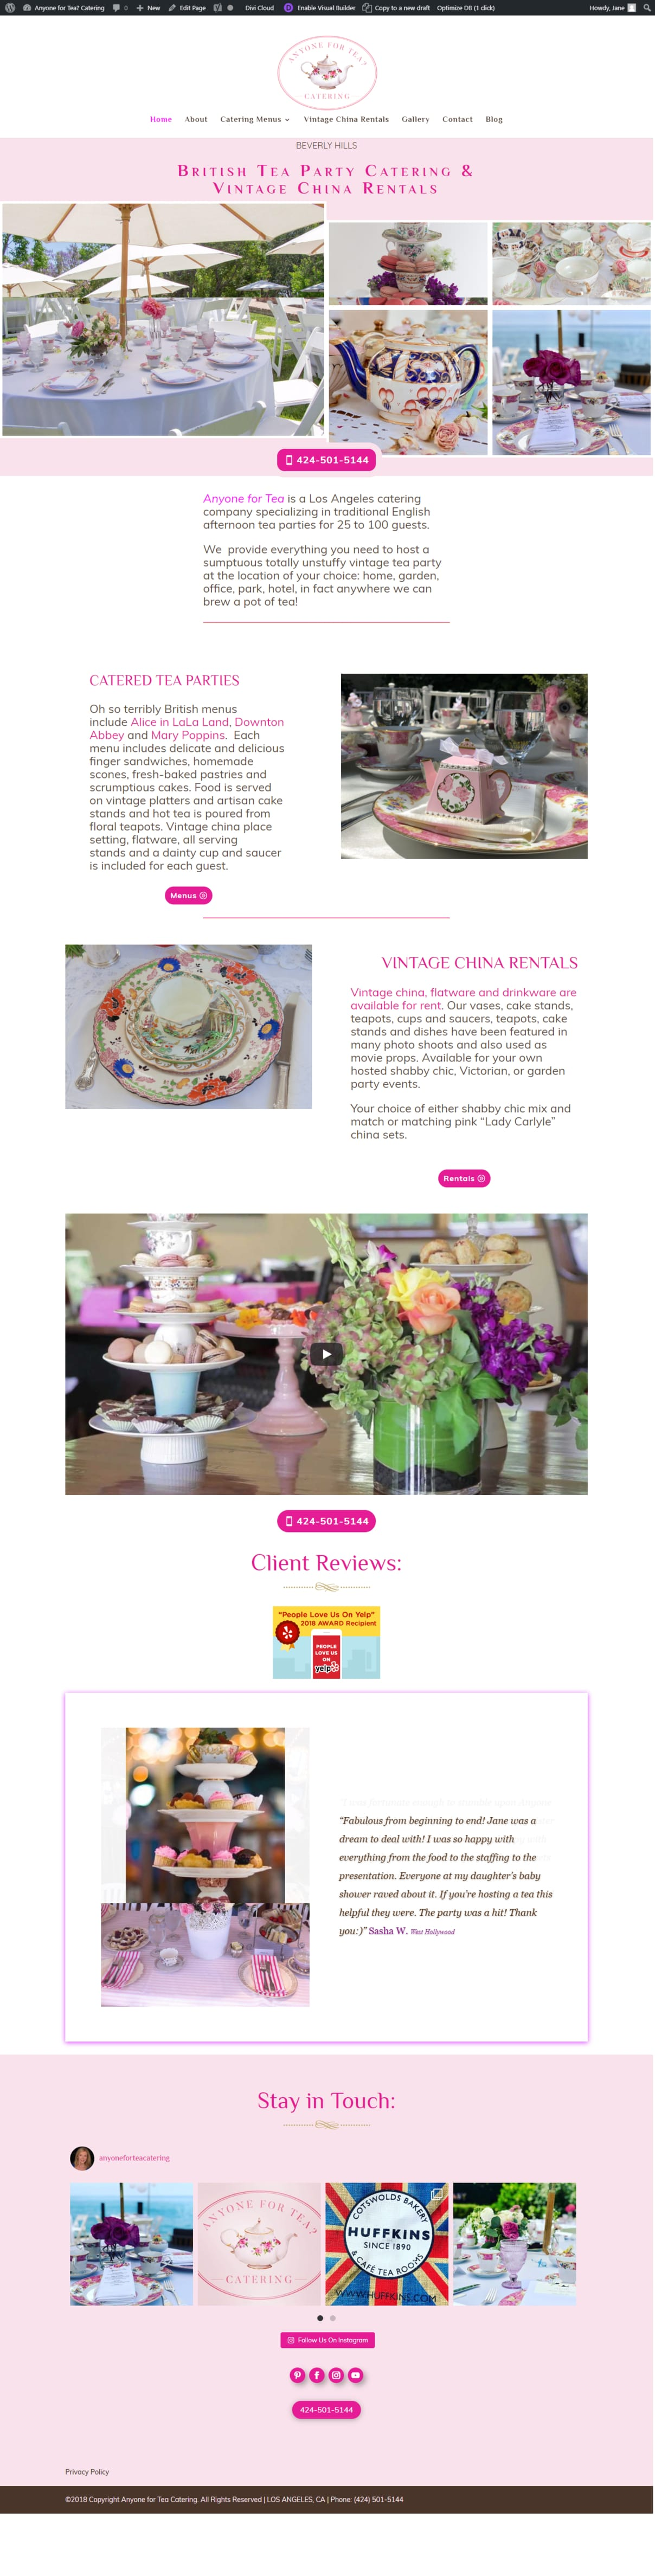 Beverly Hills Website English Tea Party Caterer | I Ain't Your Momma